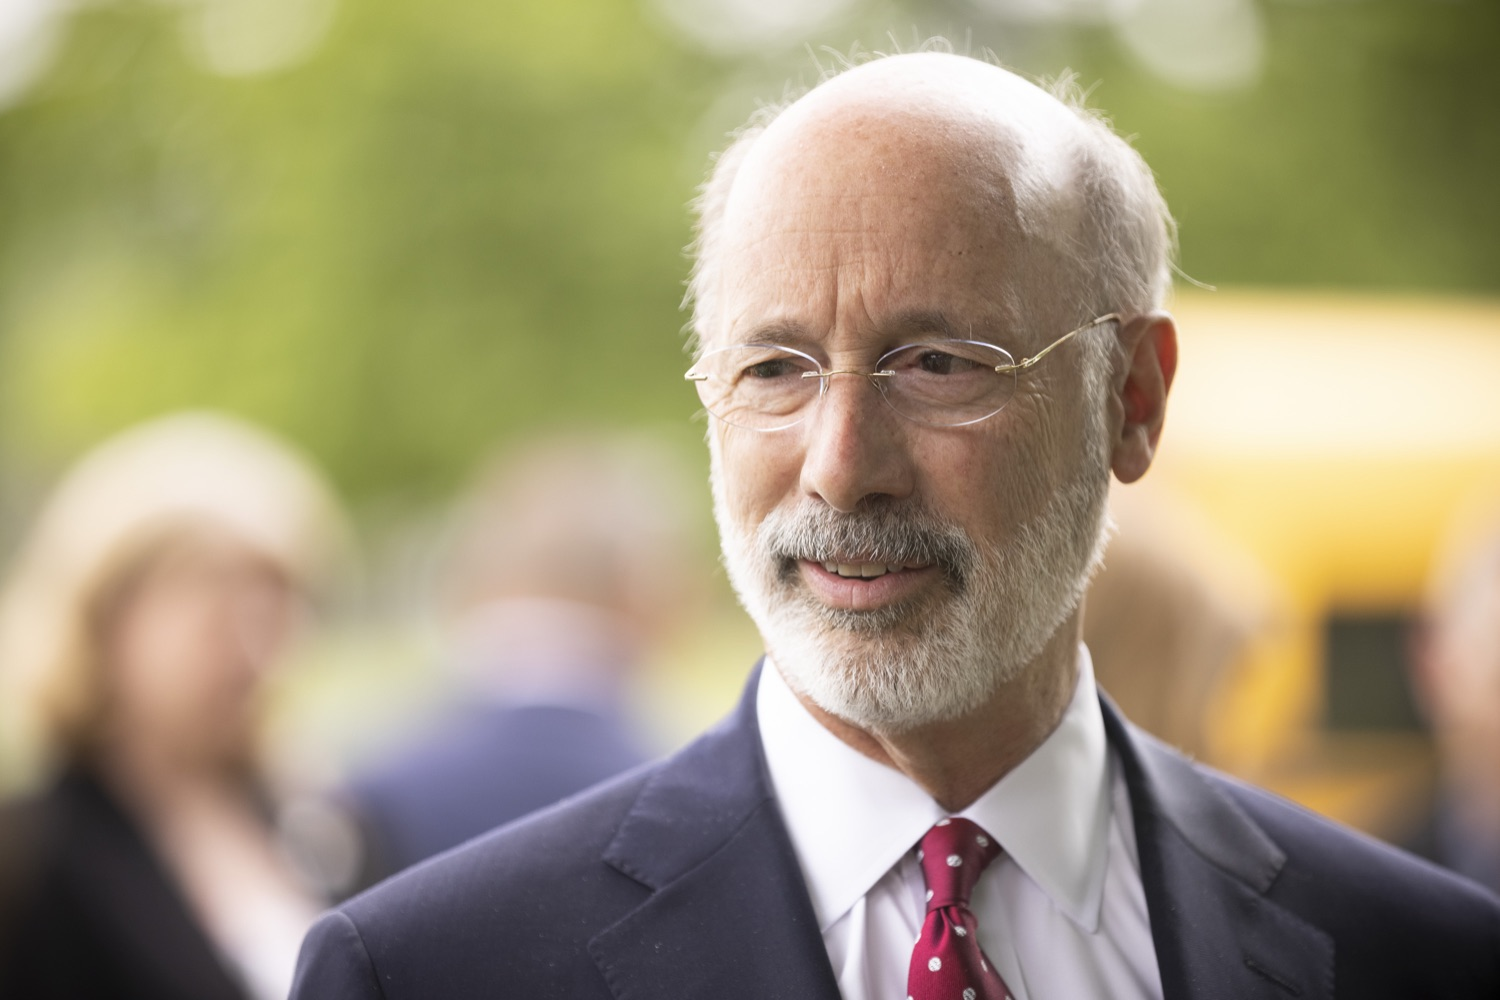 """<a href=""""https://filesource.wostreaming.net/commonwealthofpa/photo/18796_gov_charterSchool_dz_021.jpg"""" target=""""_blank"""">⇣Download Photo<br></a>Pennsylvania Governor Tom Wolf speaking with school administrators.  With overwhelming support among school districts for his charter school accountability plan, Governor Tom Wolf visited J.P. McCaskey High School in Lancaster today to discuss his bipartisan proposal that saves an estimated $395 million a year. Lancaster, PA  June 01, 2021"""